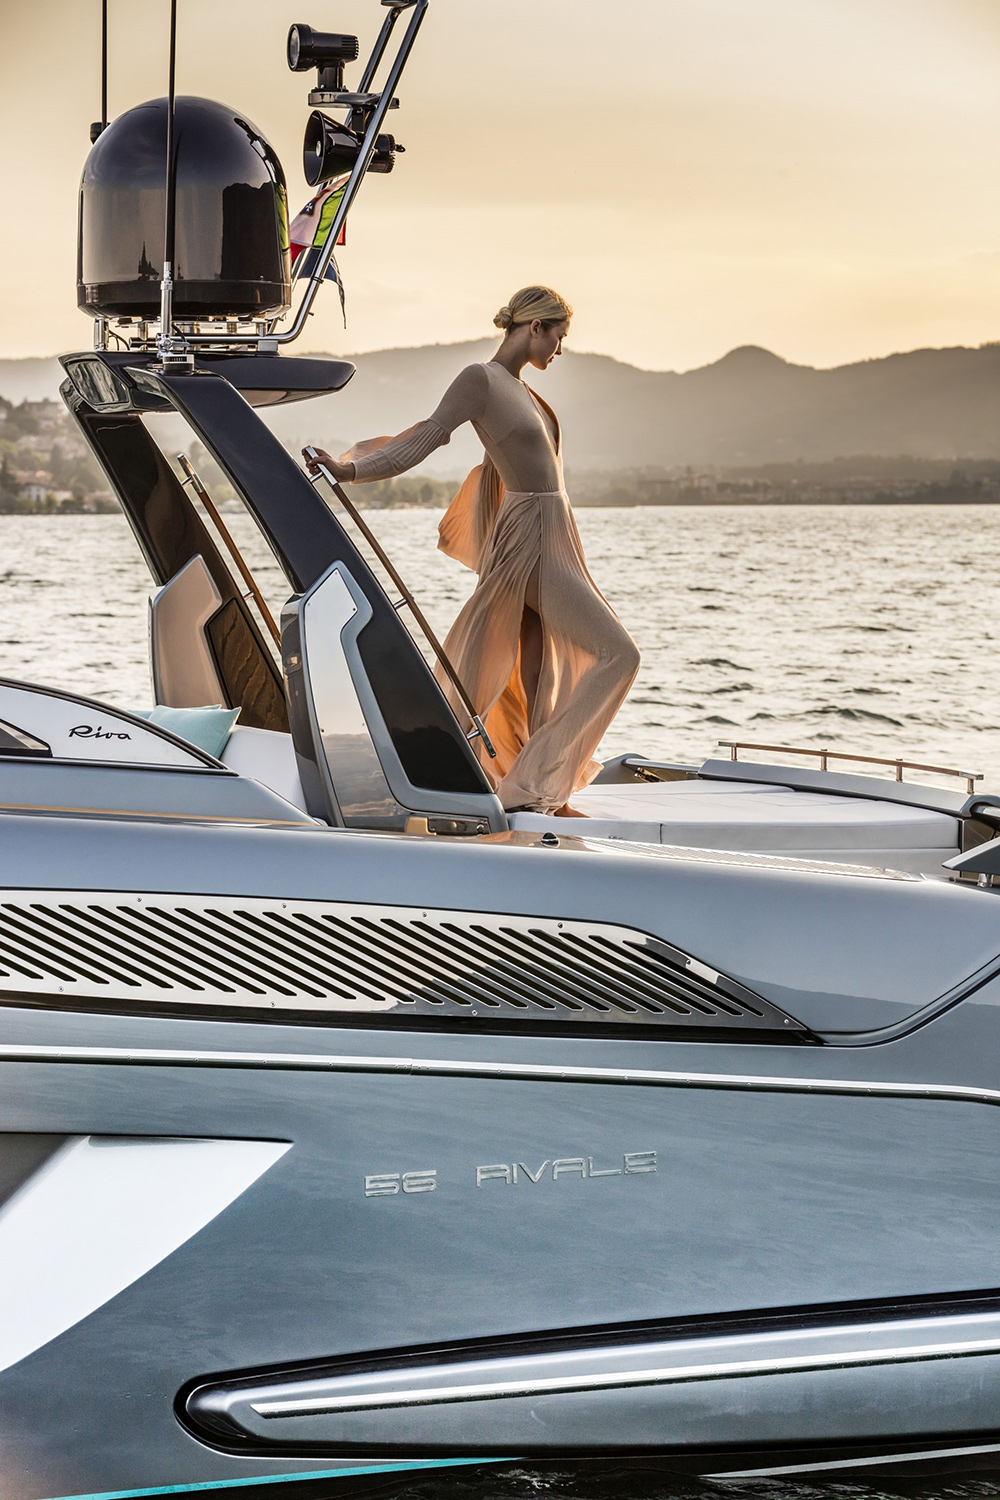 Woman aboard Riva 56' Rivale - Luxury Yacht